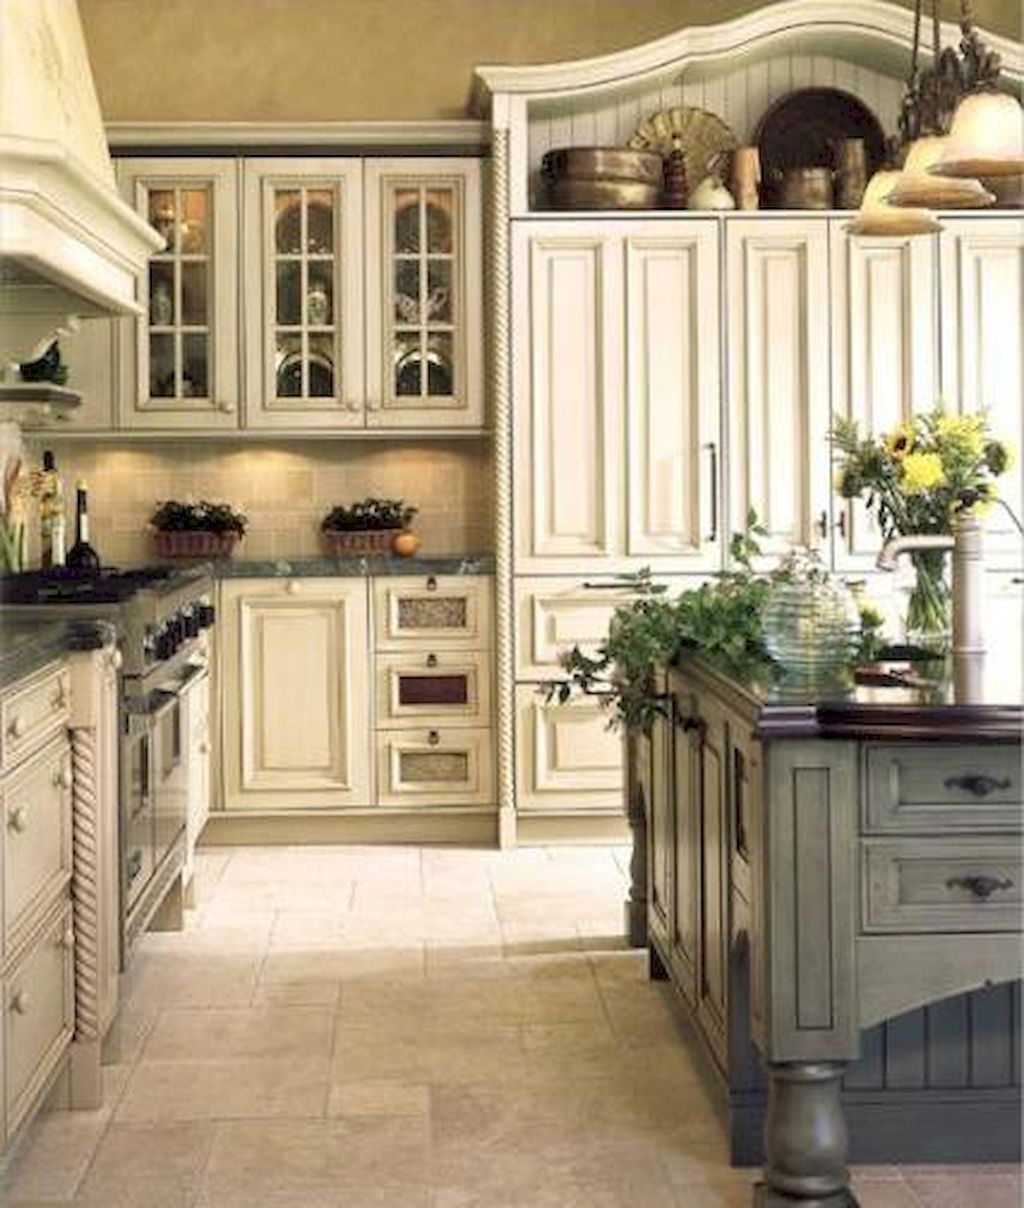 Incredible Kitchen Remodeling Ideas: Incredible French Country Kitchen Design Ideas (22